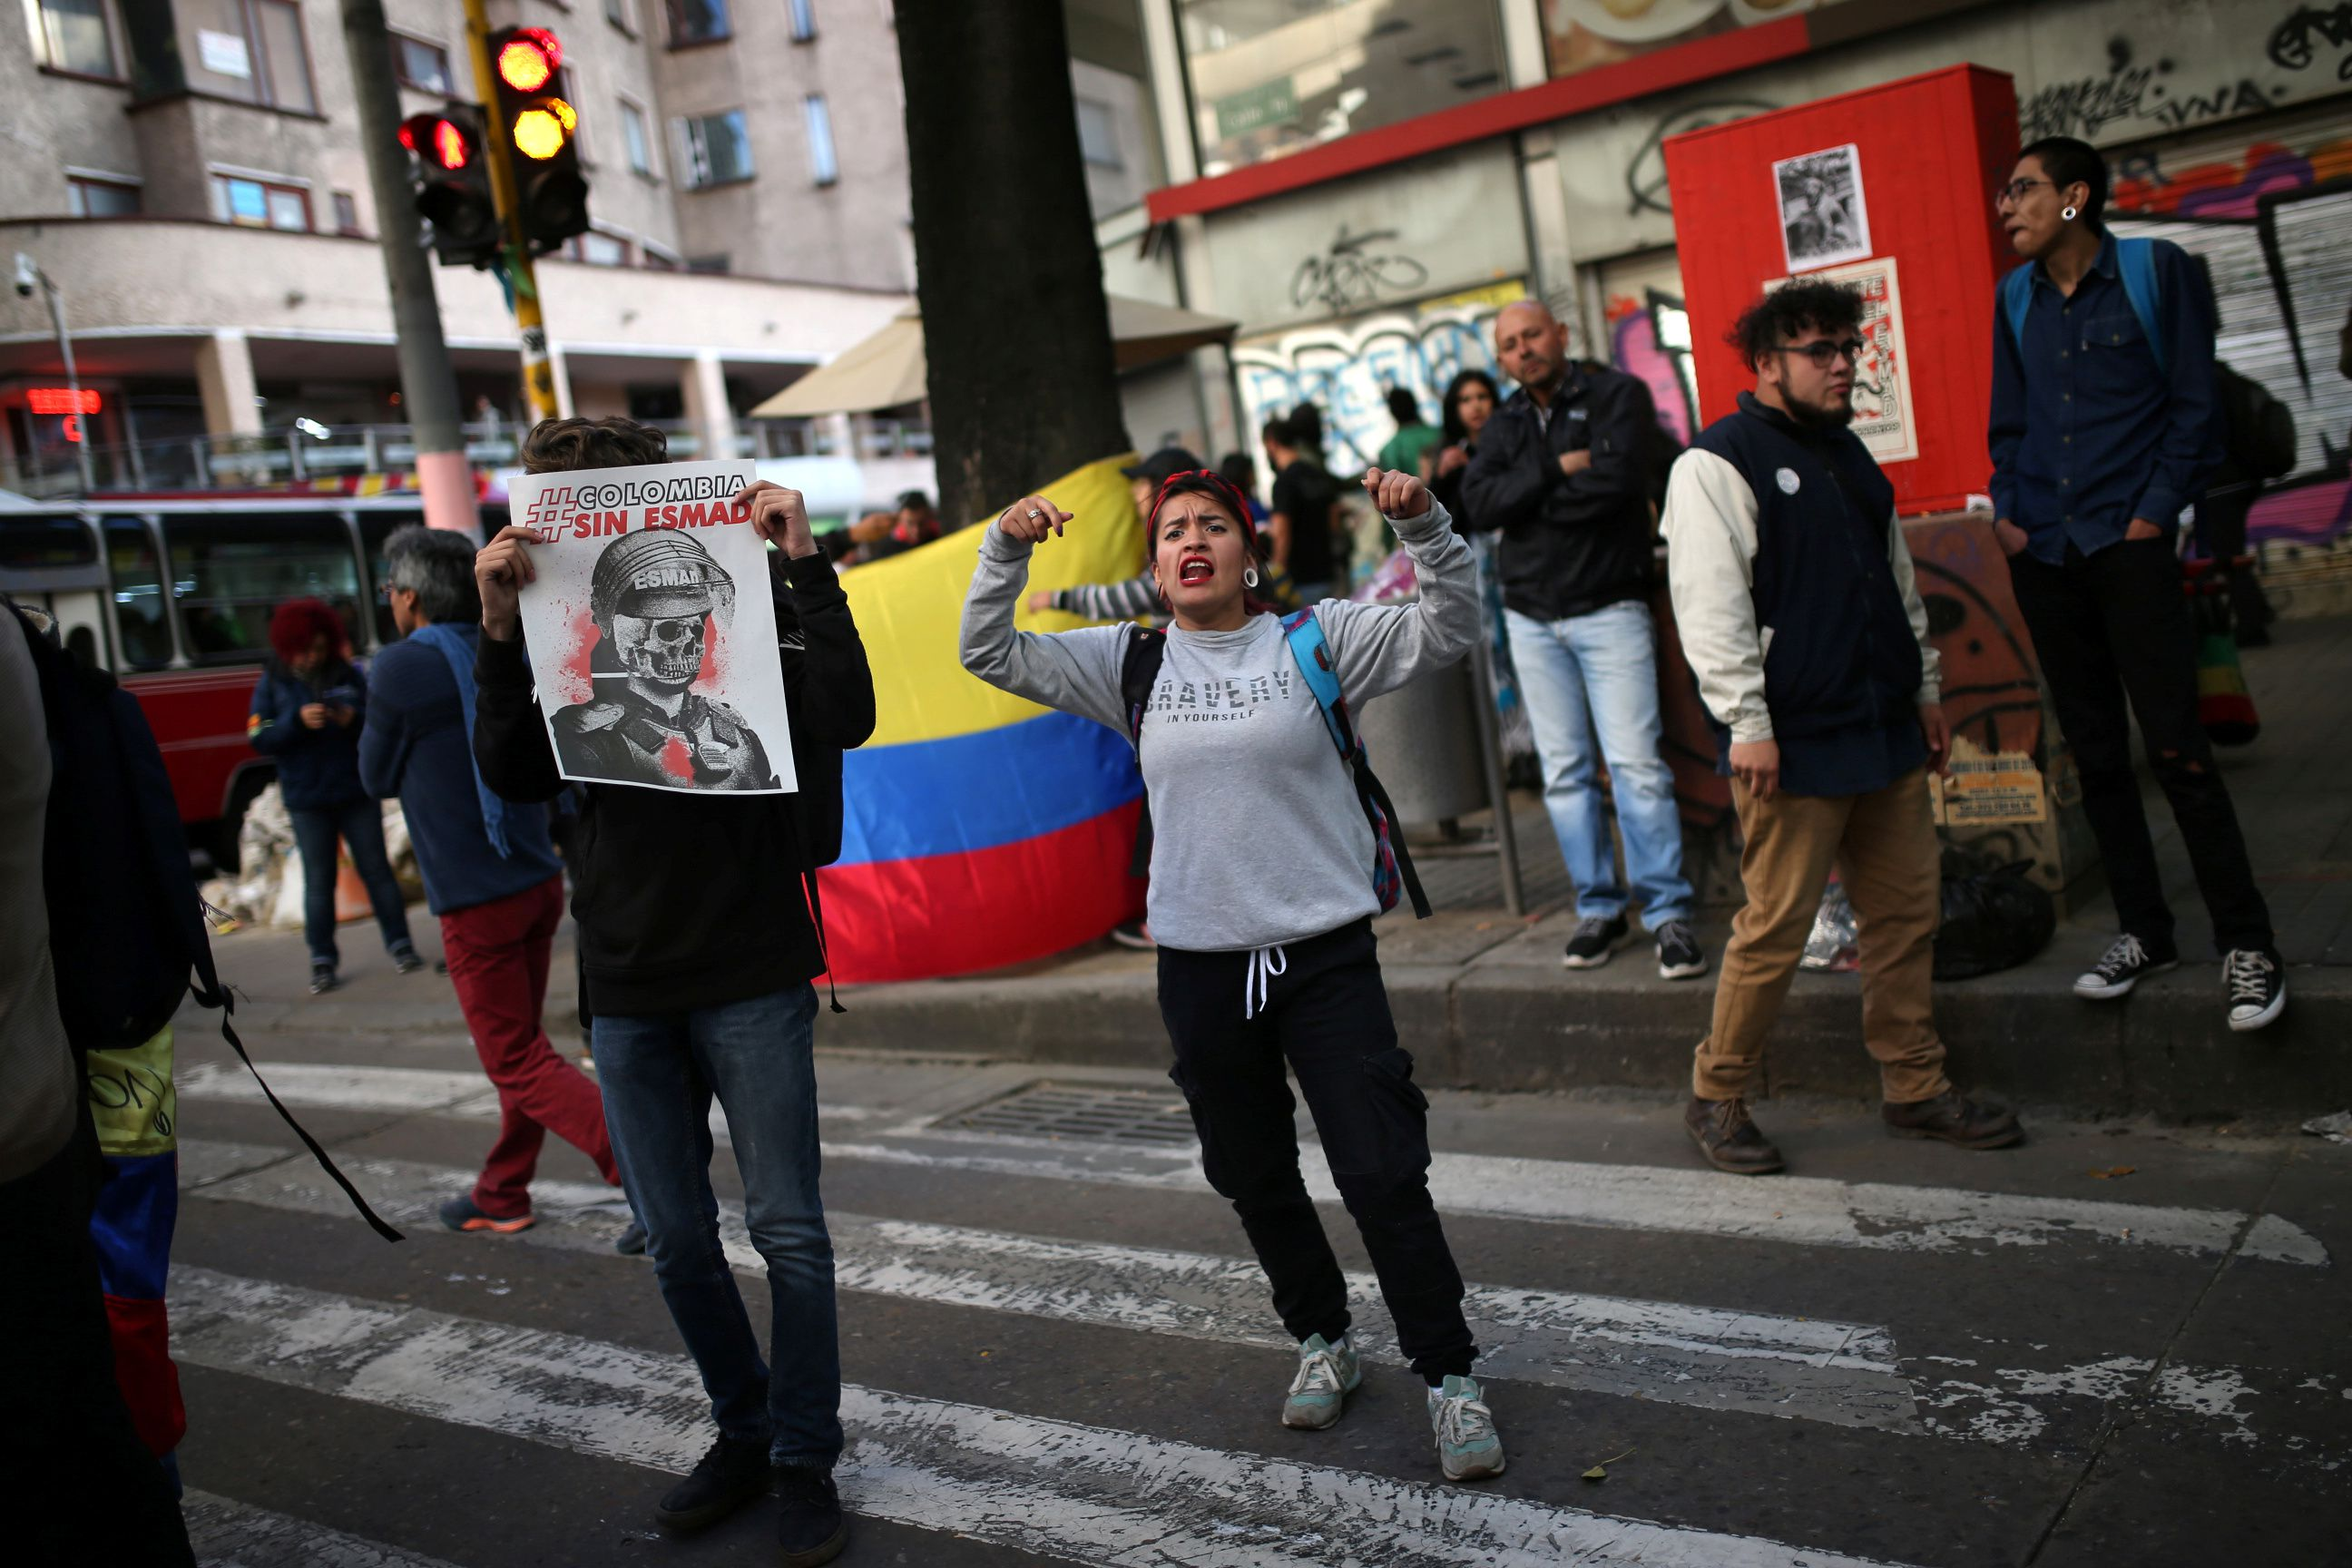 """A person holds a sign that reads """"Colombia without ESMAD"""" during a demonstration in honour of Dilan Cruz, a teenage demonstrator who died after being injured by a tear gas canister during an initial strike, in Bogota, Colombia December 23, 2019. REUTERS/Luisa Gonzalez"""